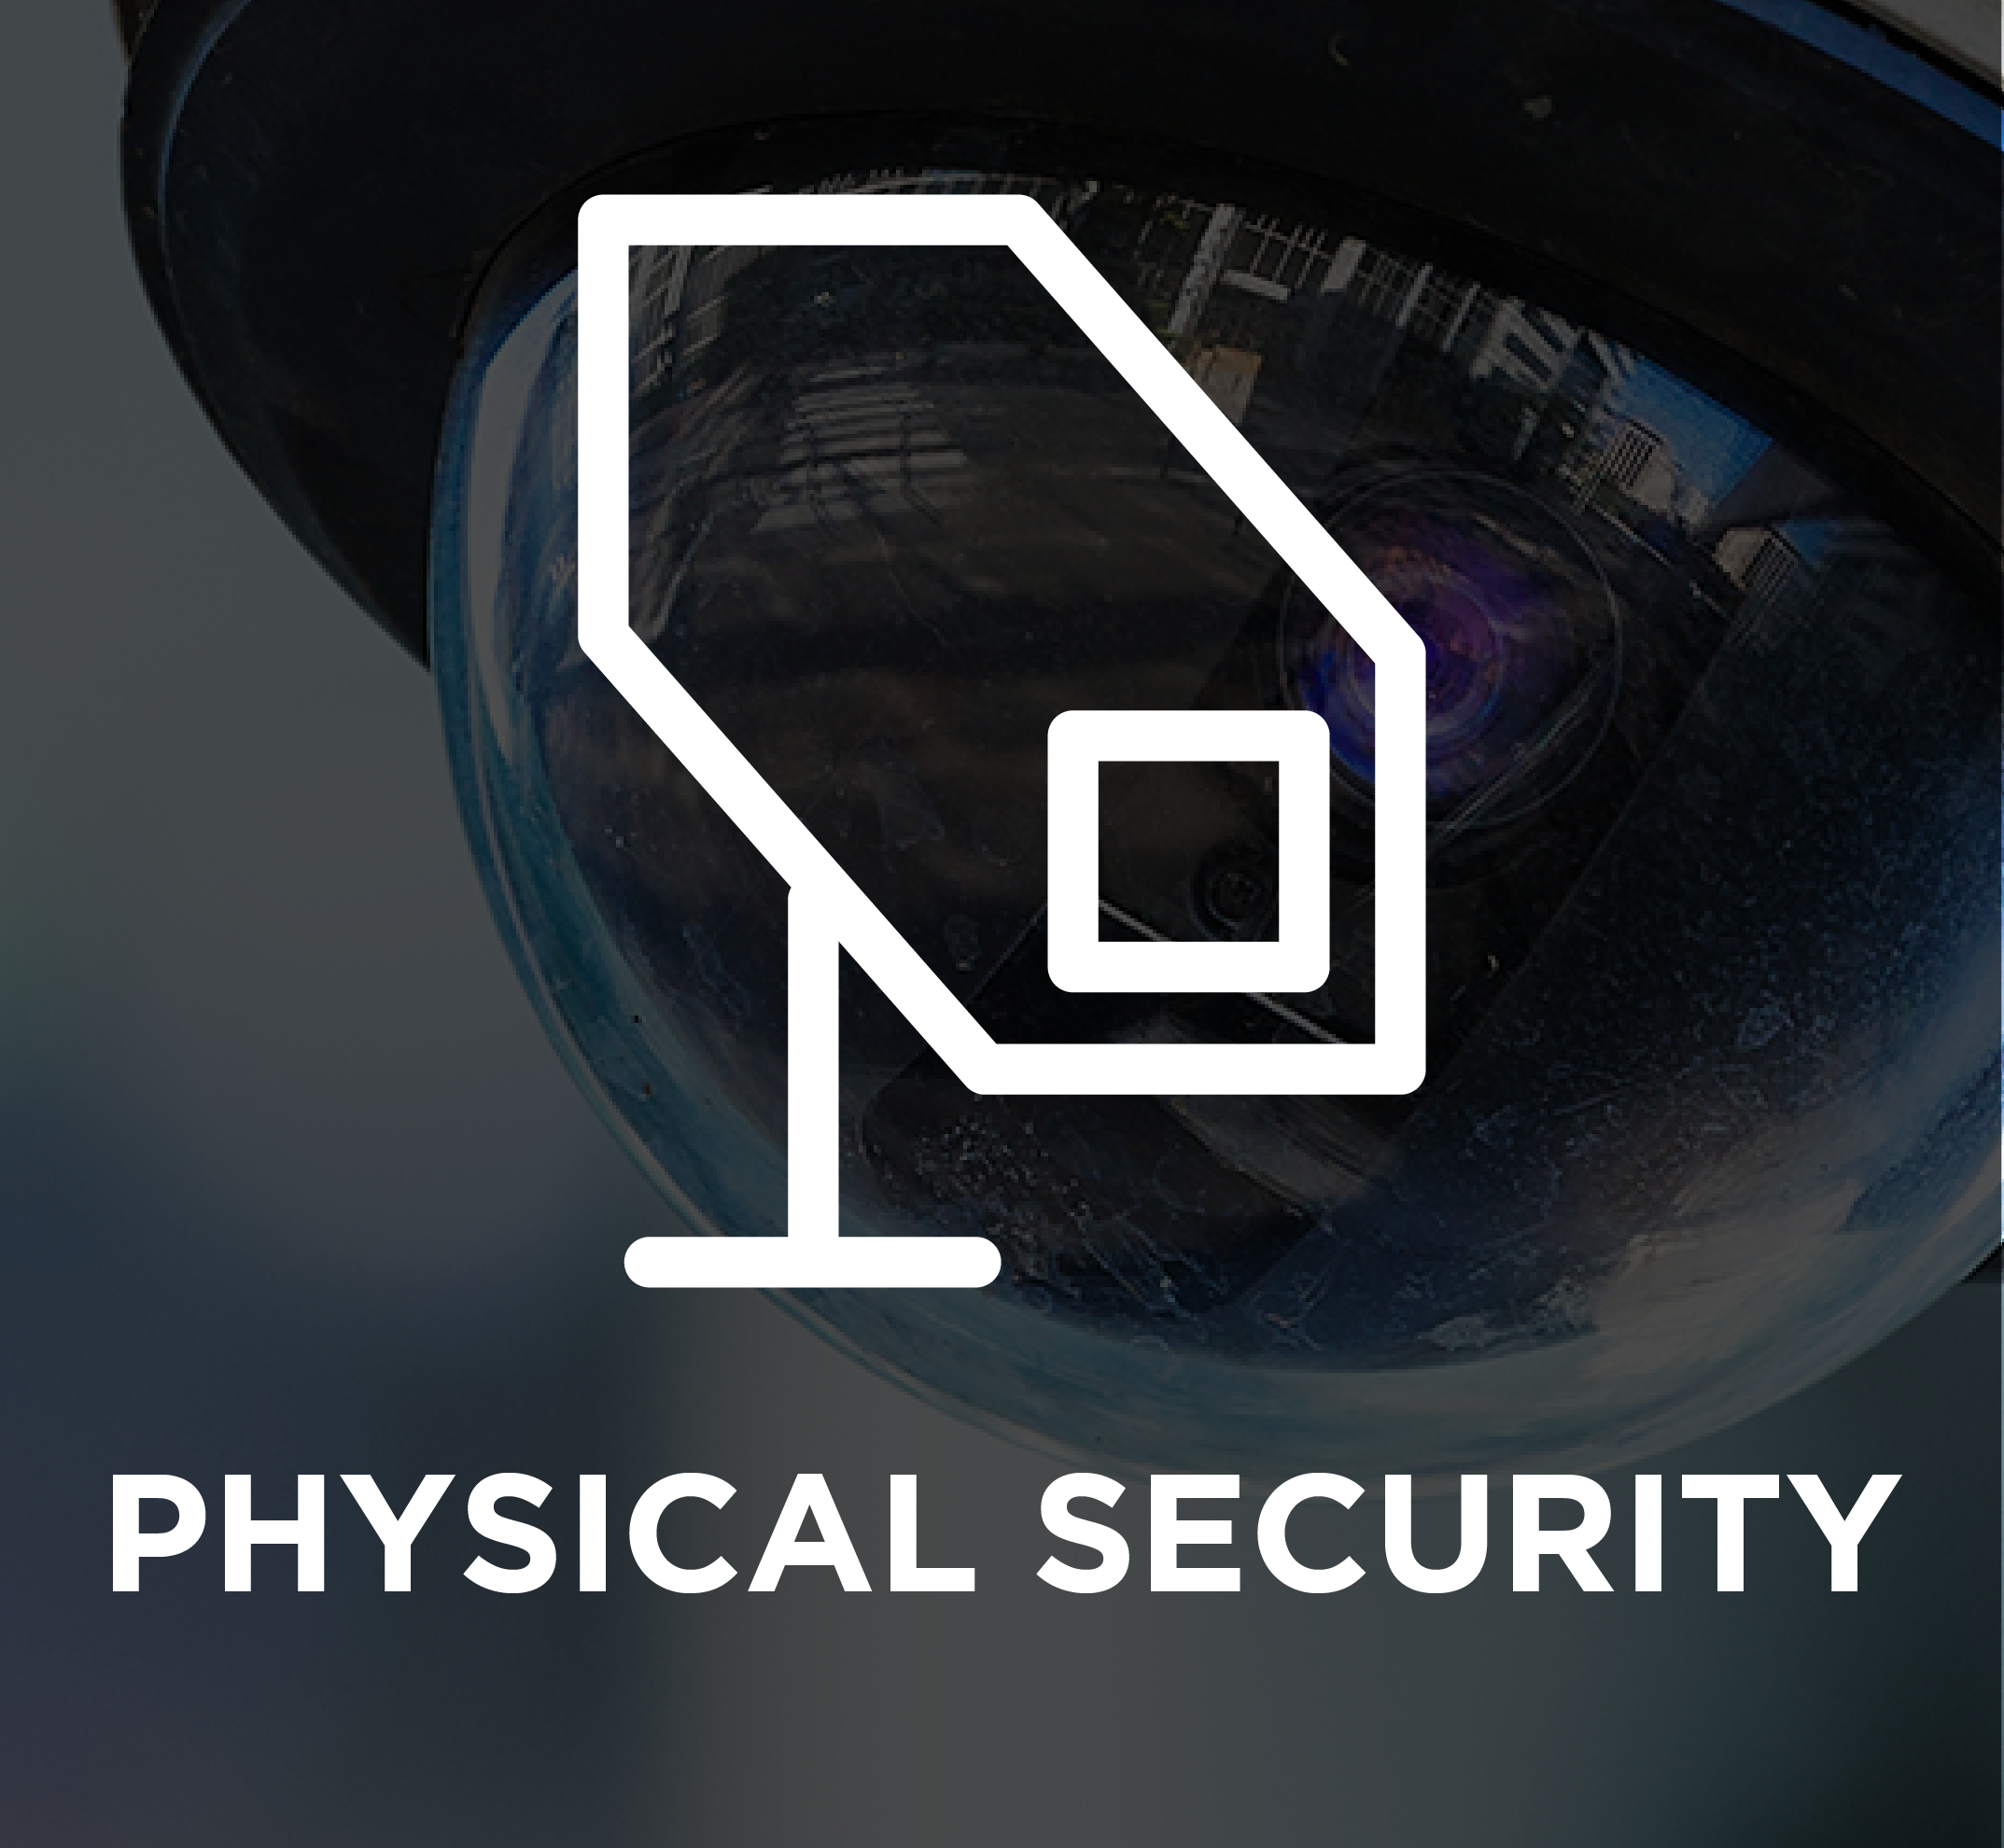 Physical-security-title